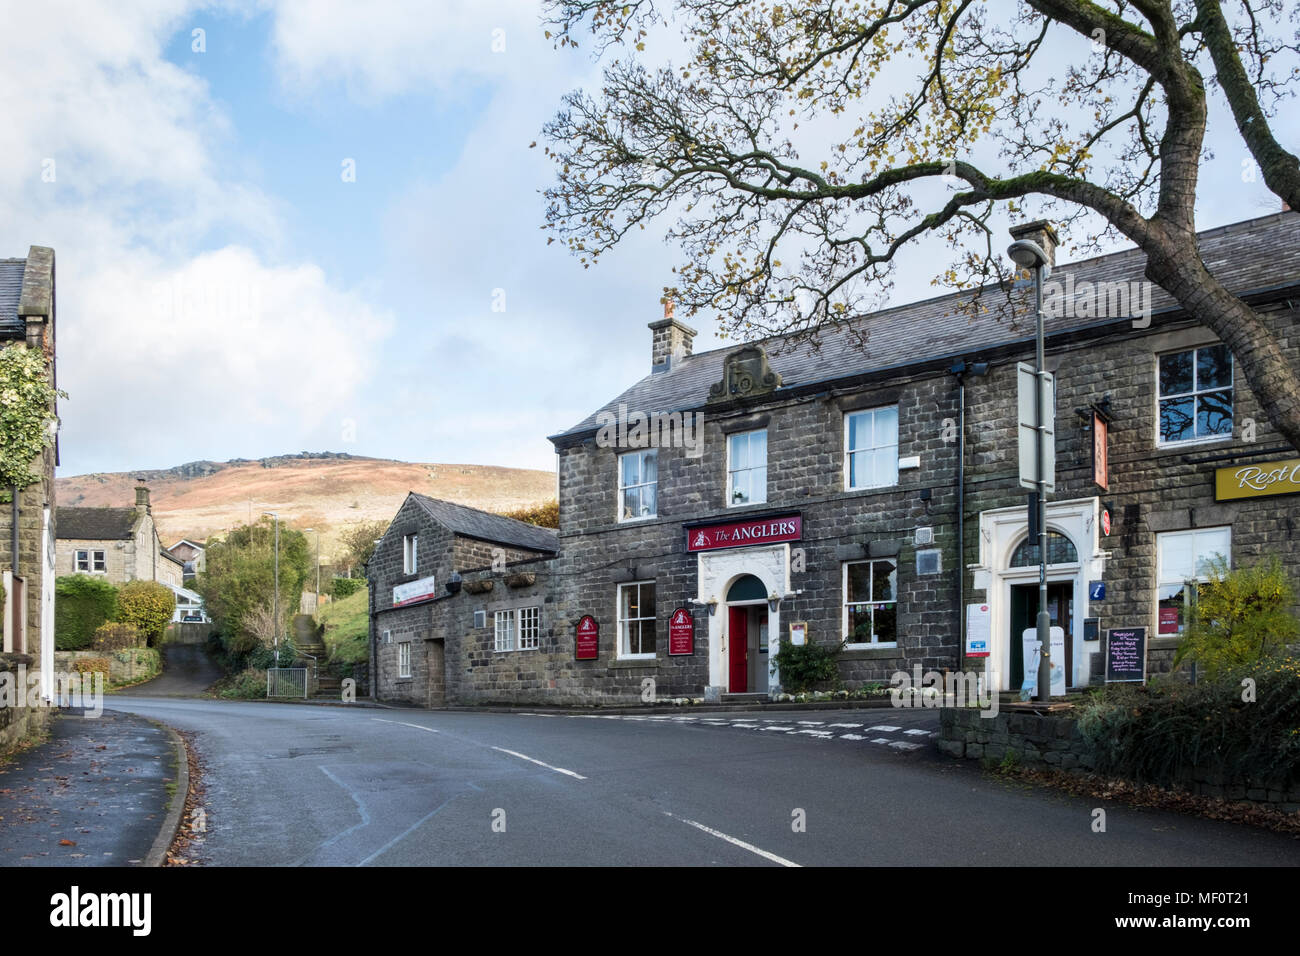 The Anglers pub in the village of Bamford with Bamford Edge in the distance rising above the village, Derbyshire, Peak District, England, UK - Stock Image